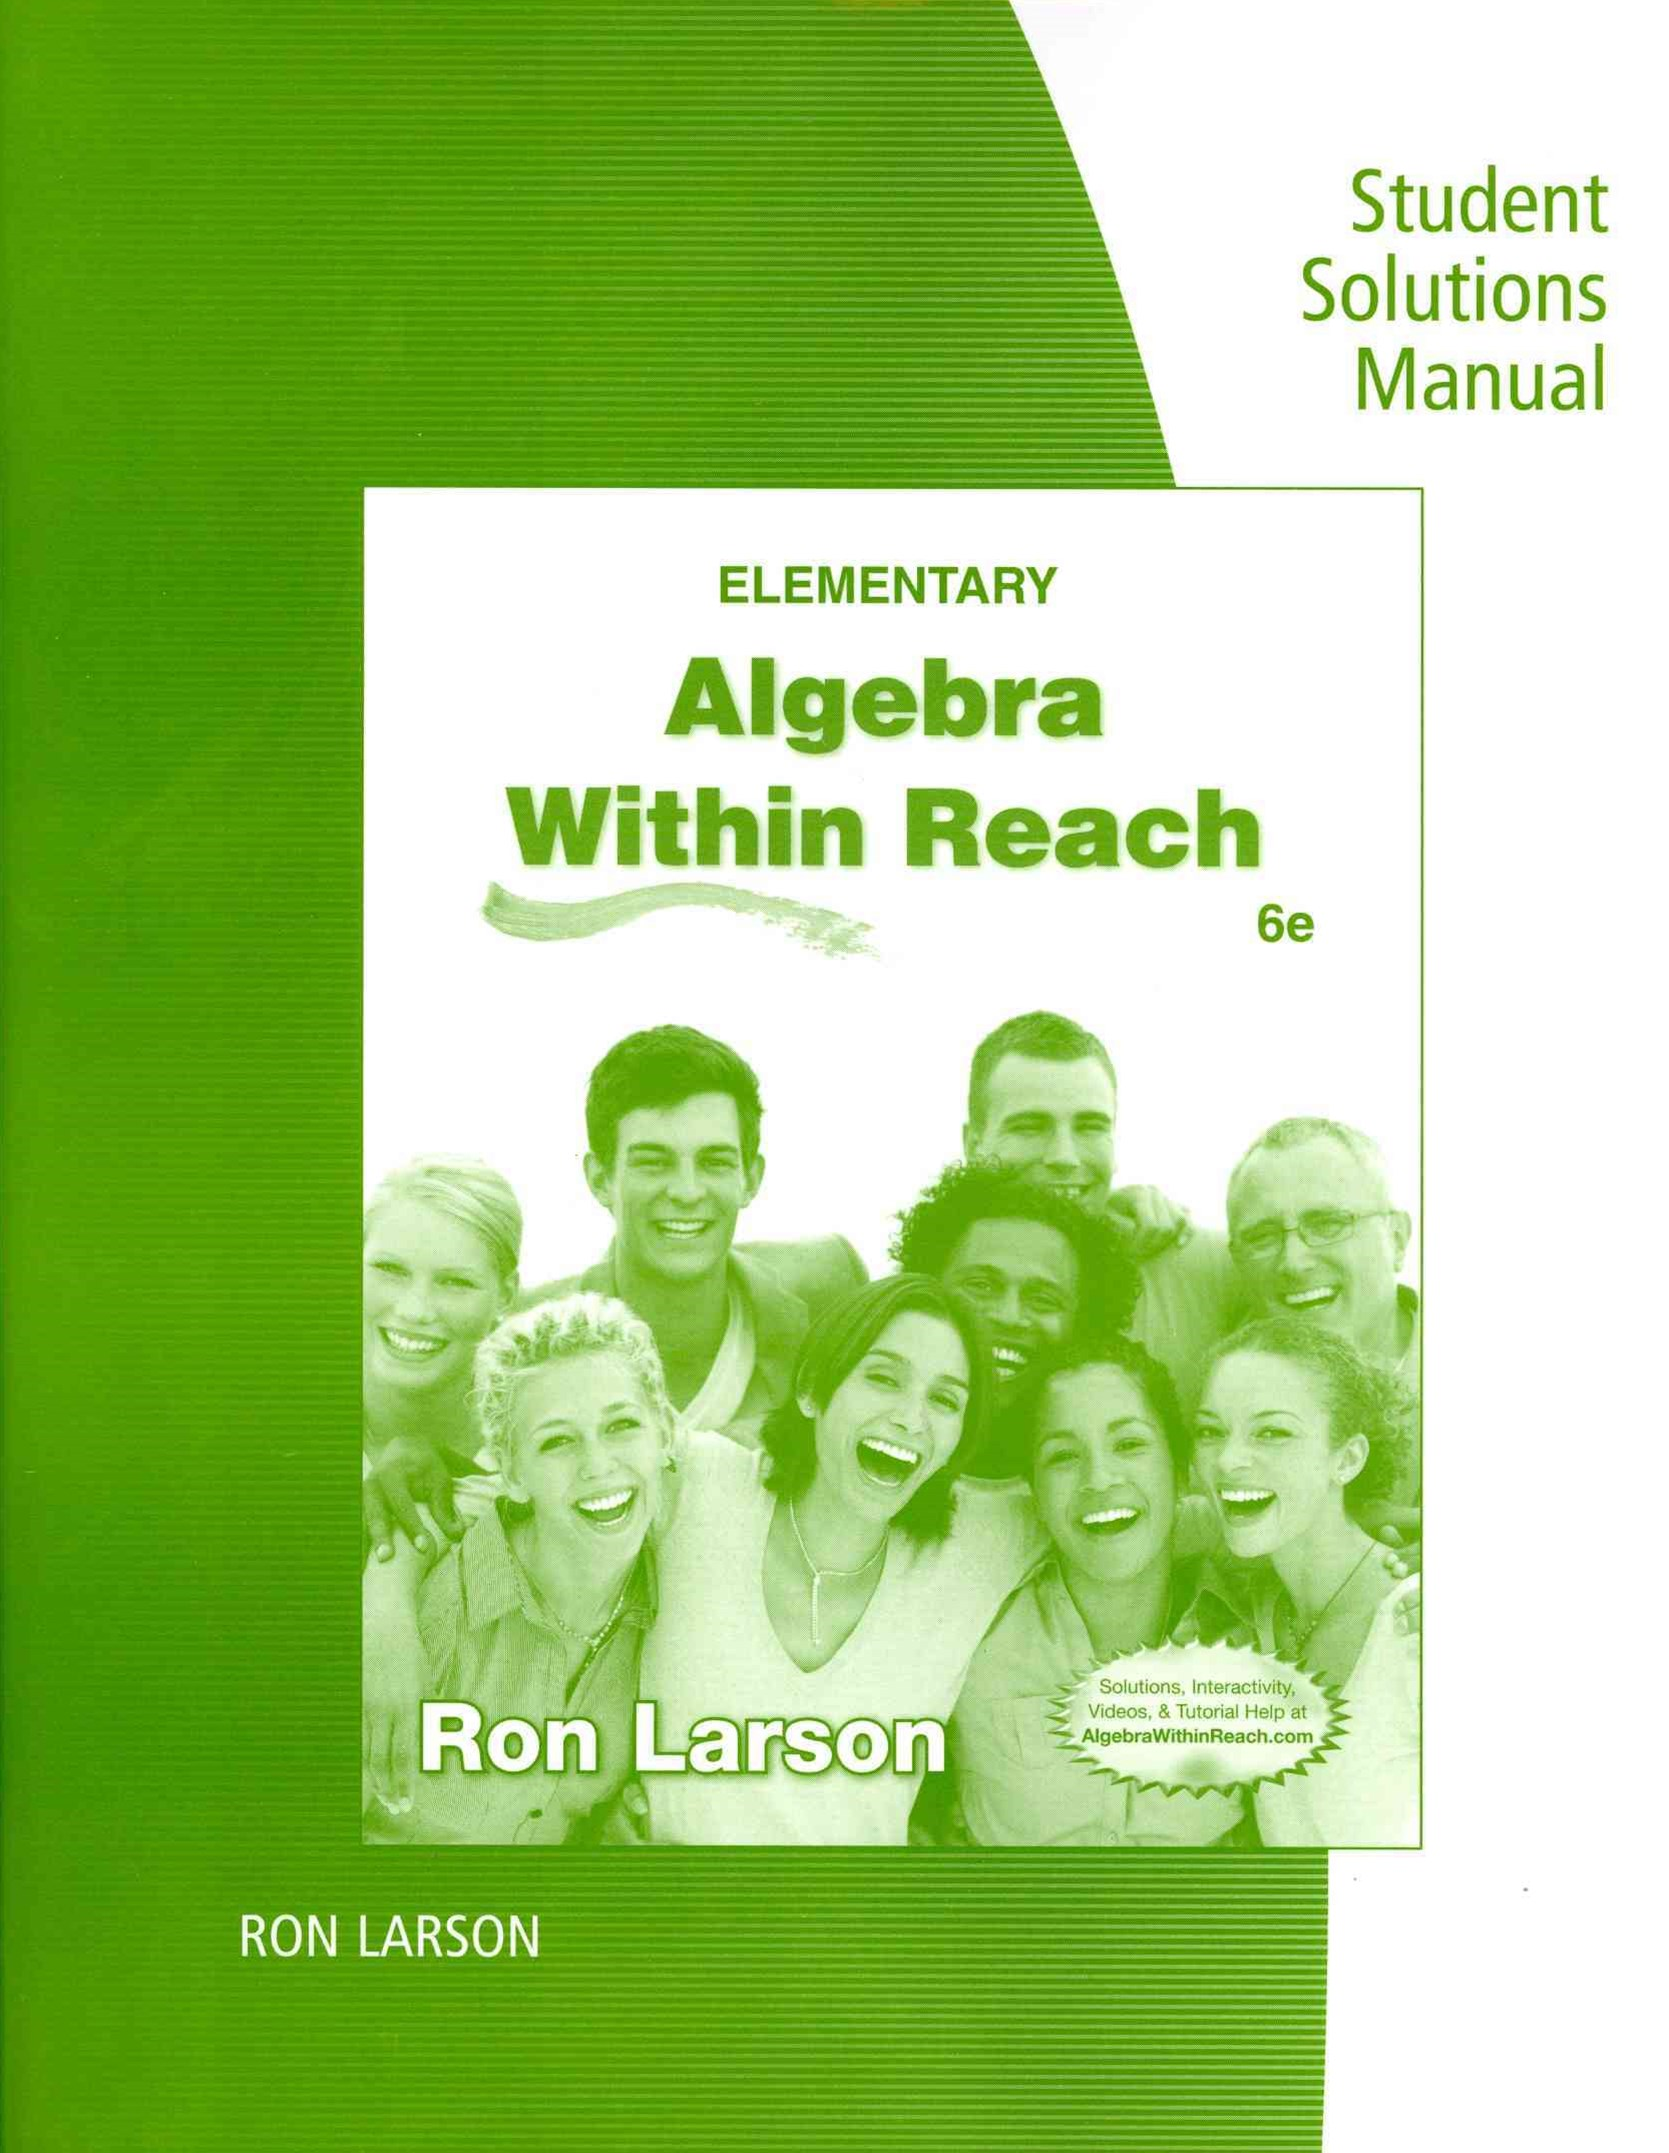 Student Solutions Manual for Larson's Elementary Algebra: Algebra  within Reach, 6th